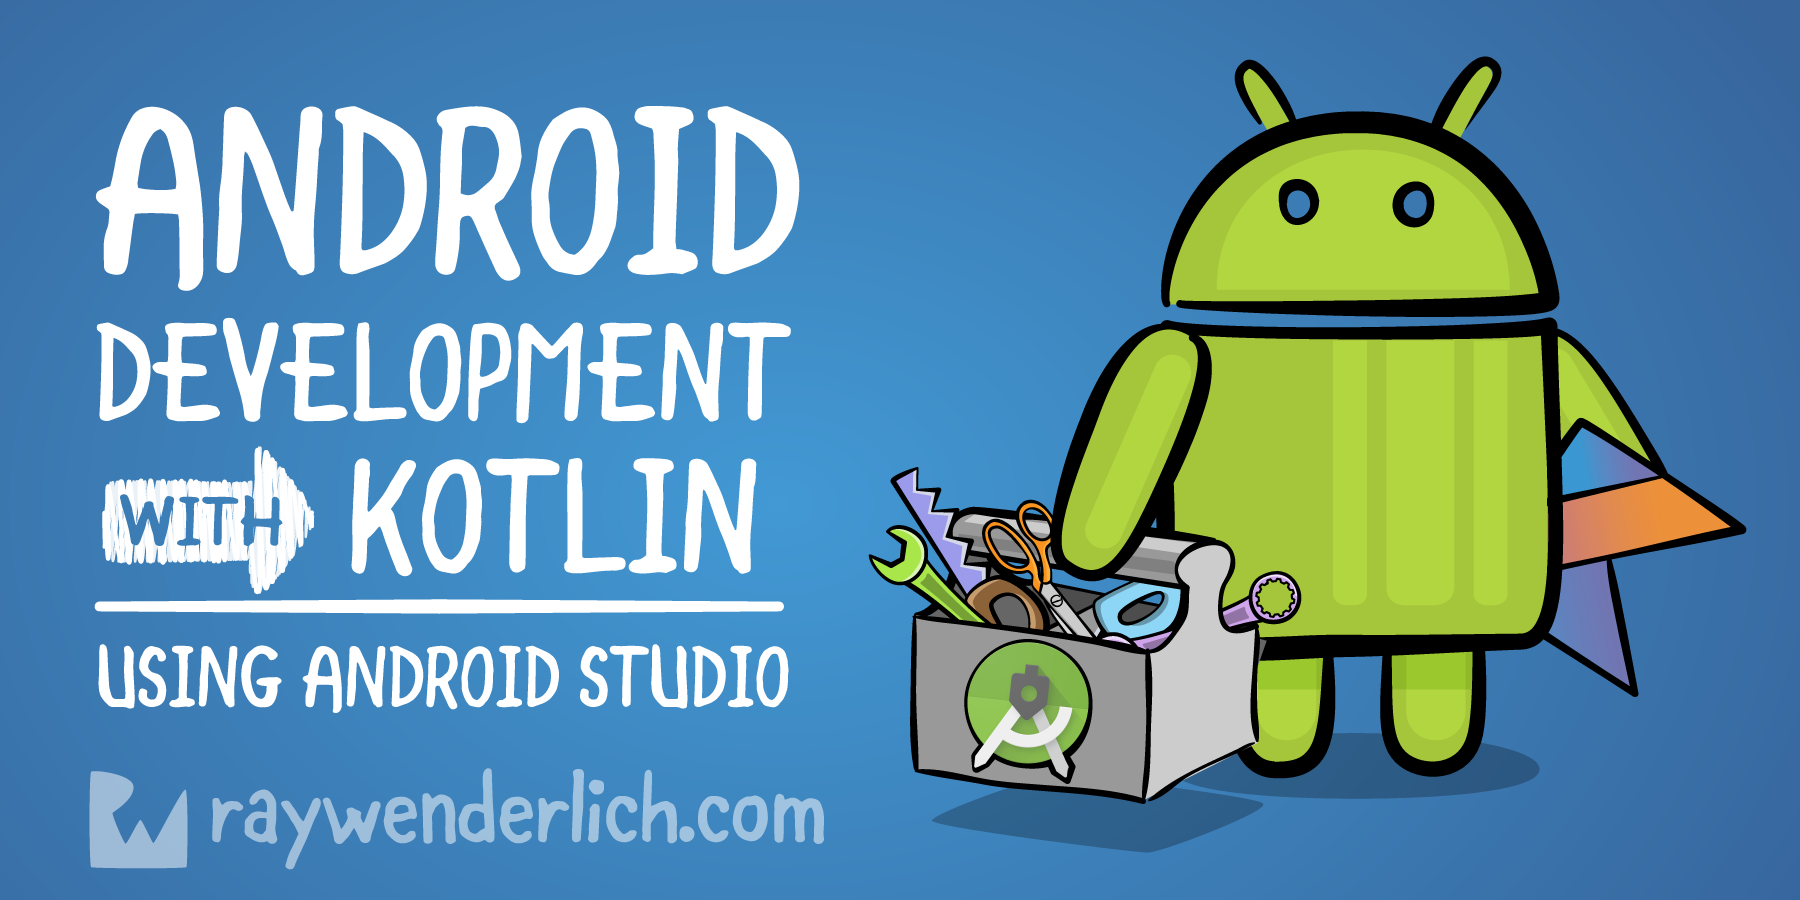 Beginning Android Development with Kotlin, Part Two: Using Android